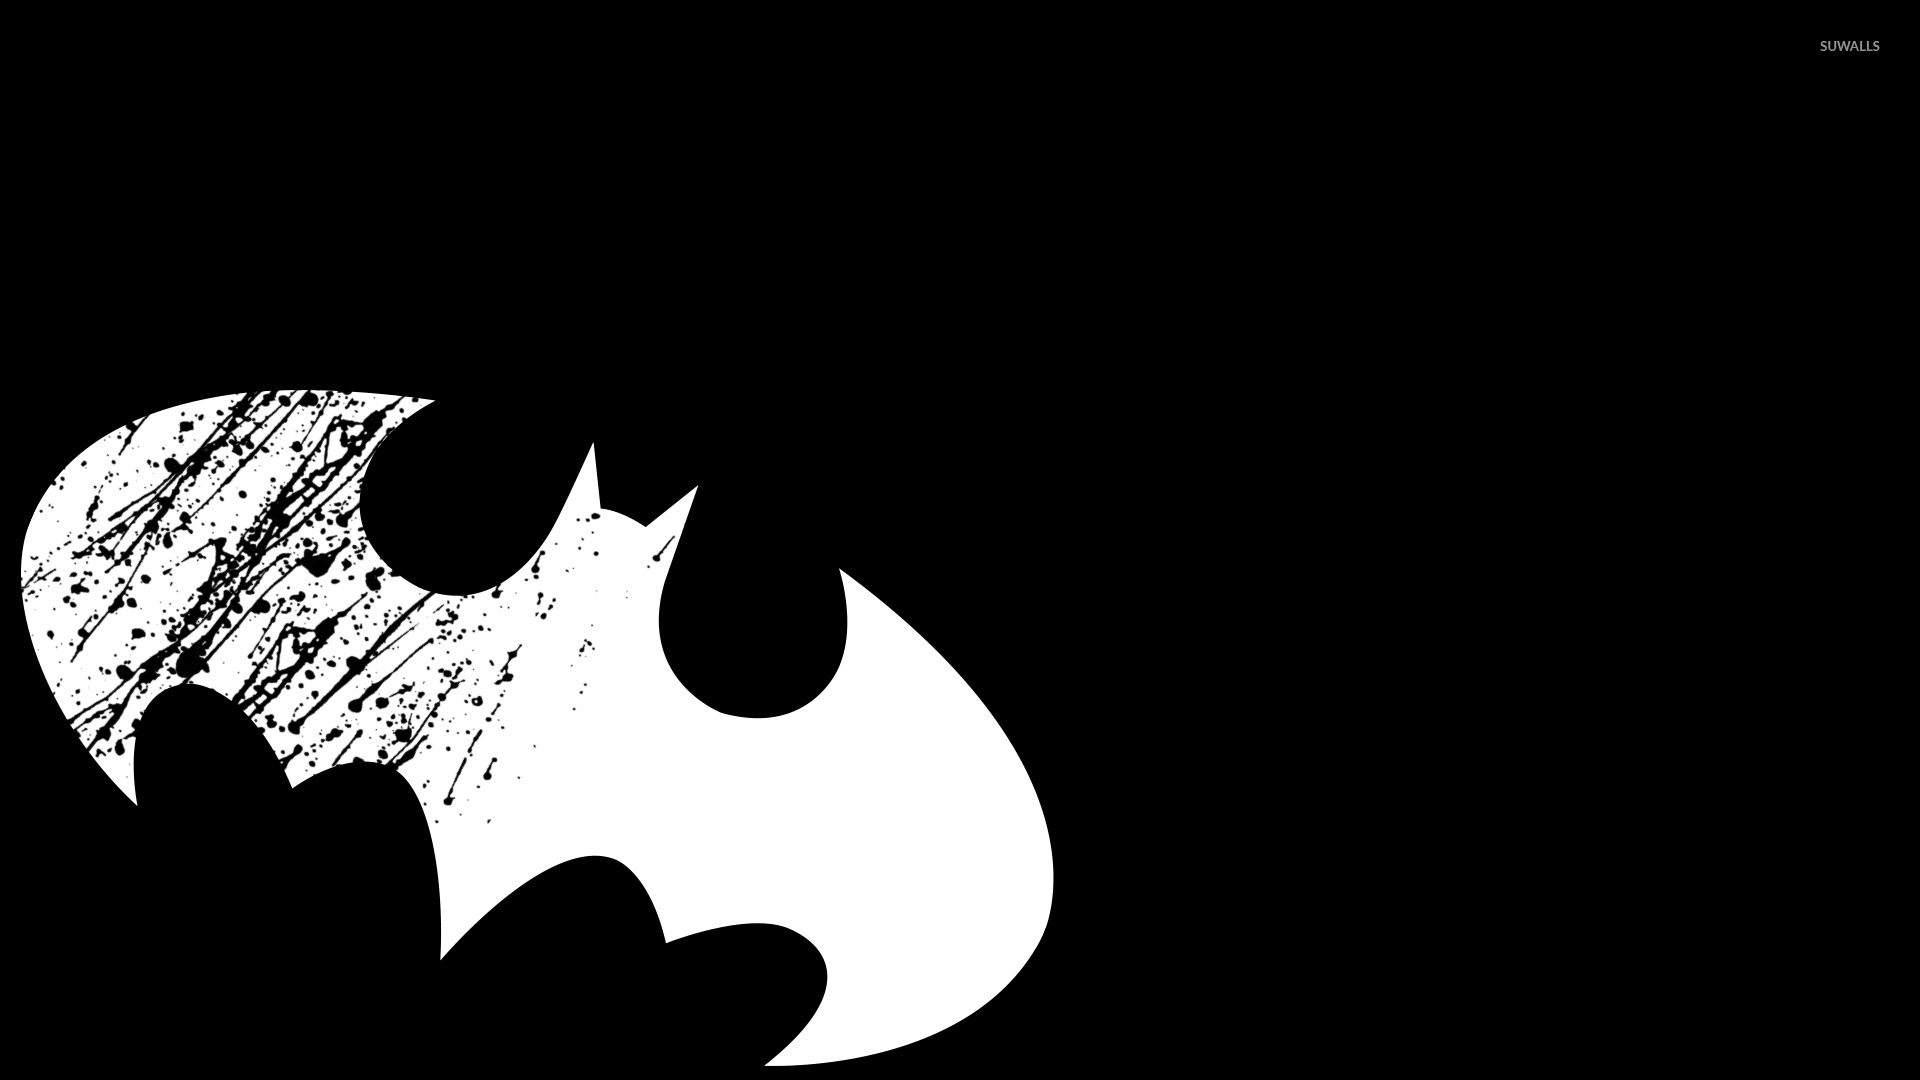 500 Batman Logo Wallpapers HD Images Vectors Free Download